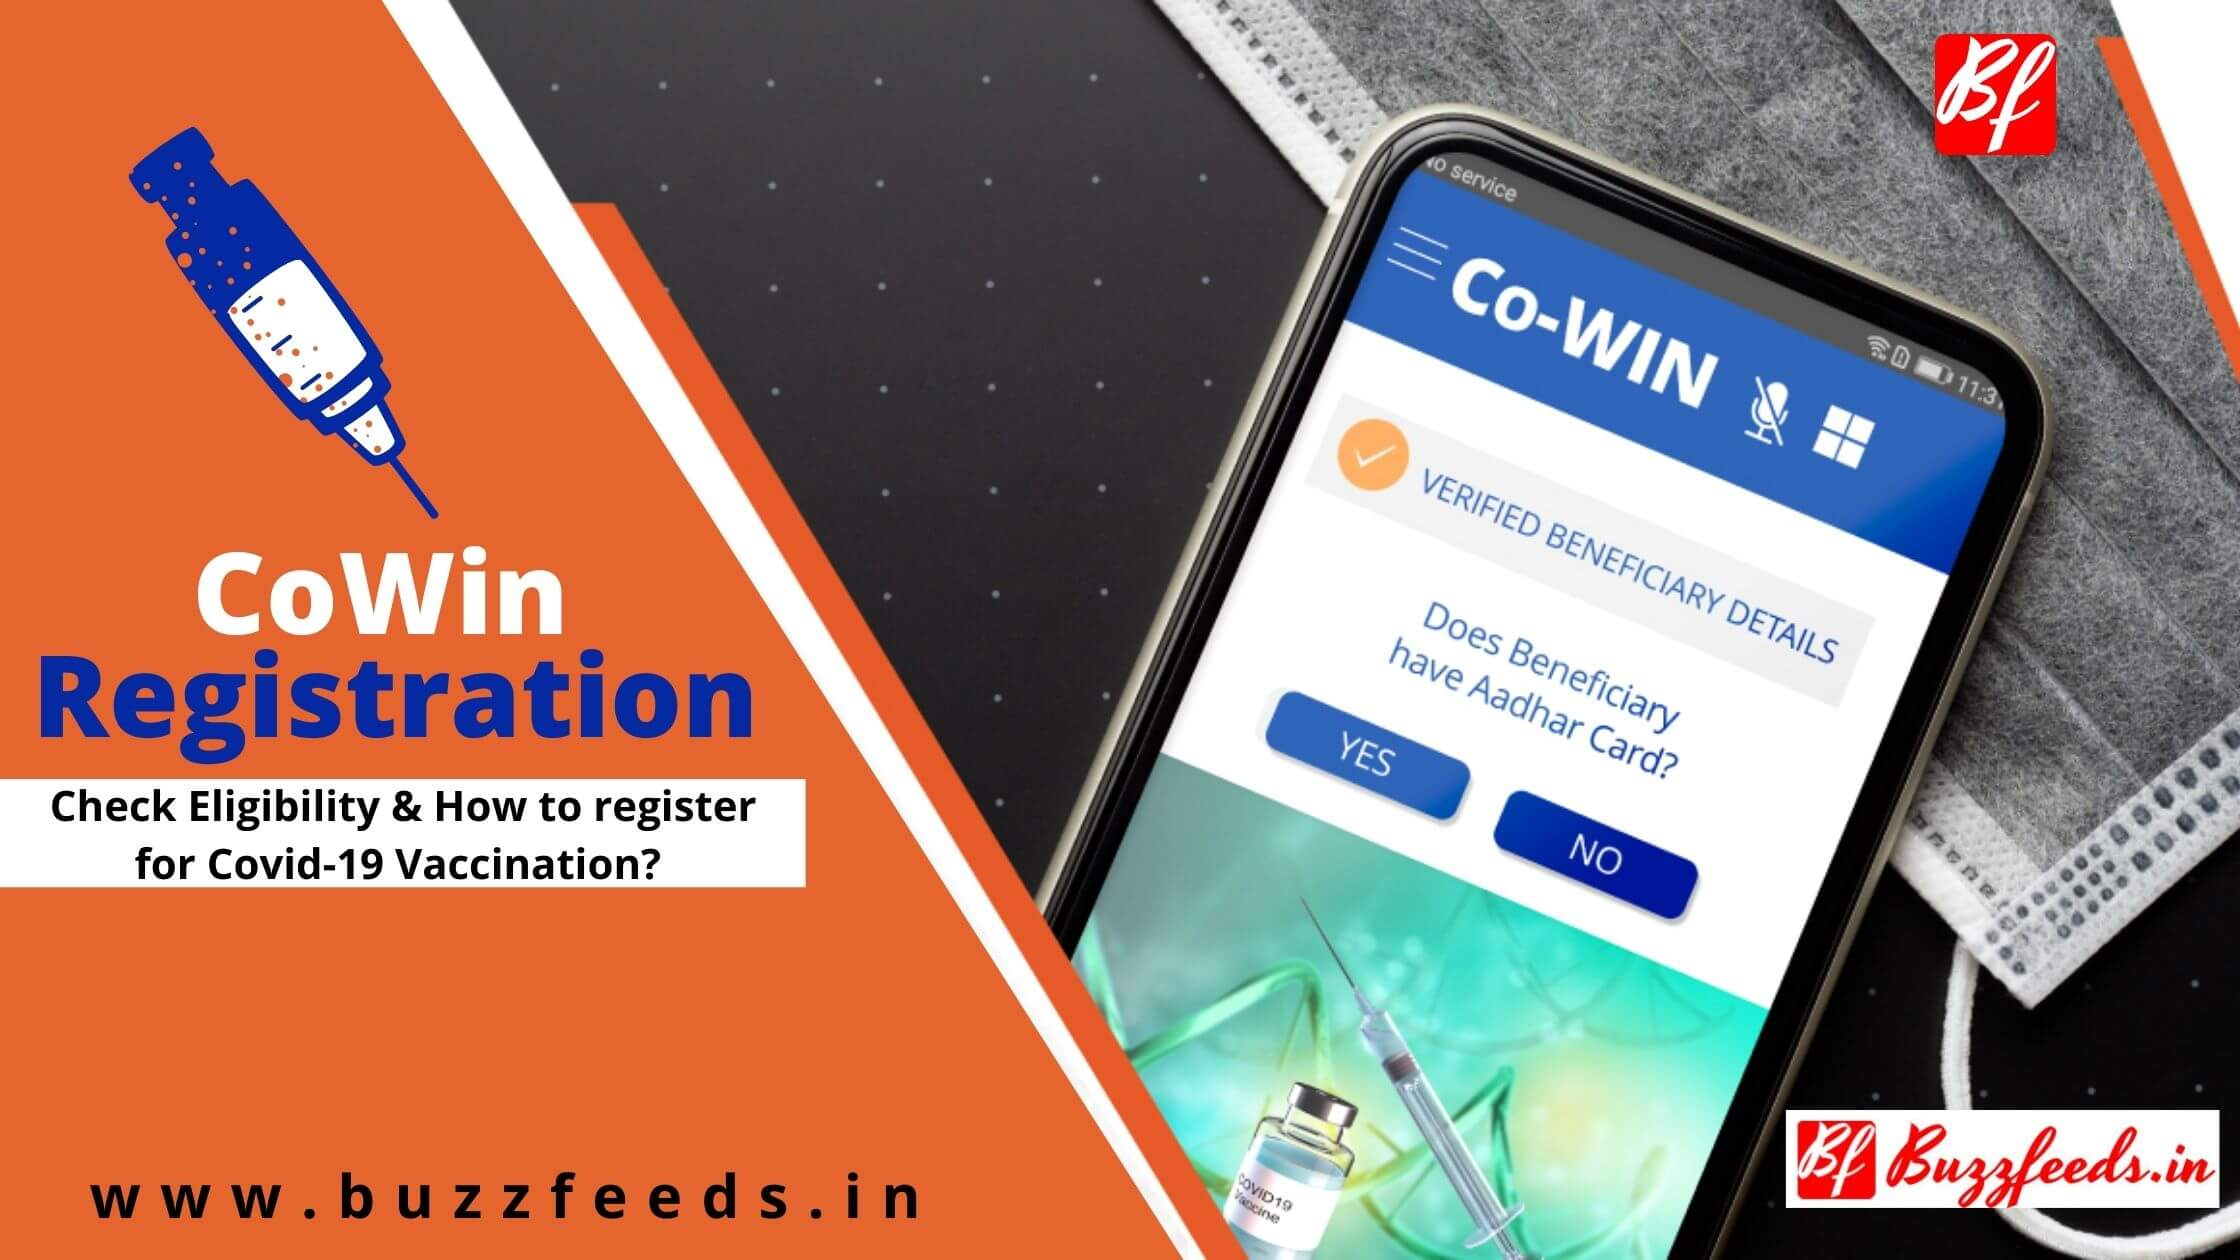 You are currently viewing CoWin Registration Eligibility & How to register for Covid-19 Vaccination?